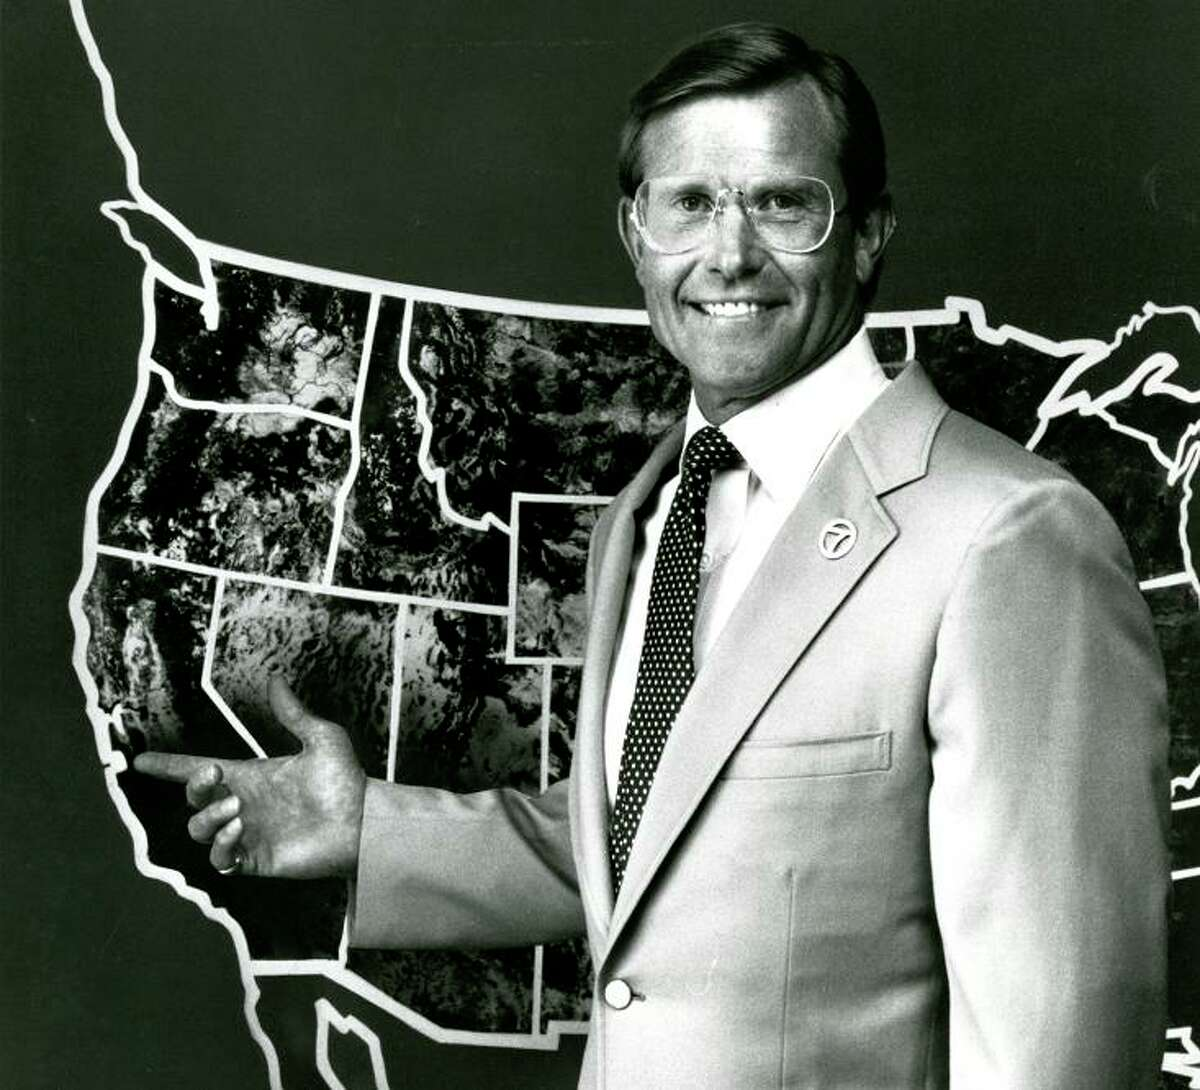 """PETE GIDDINGS: The makers of """"Anchorman"""" stole half of that movie from this photo. Meteorologist Giddings worked at KGO in four decades -- I'm guessing this handout photo was from the early 1980s. That """"7"""" lapel pin is boss. I hope he still has it."""